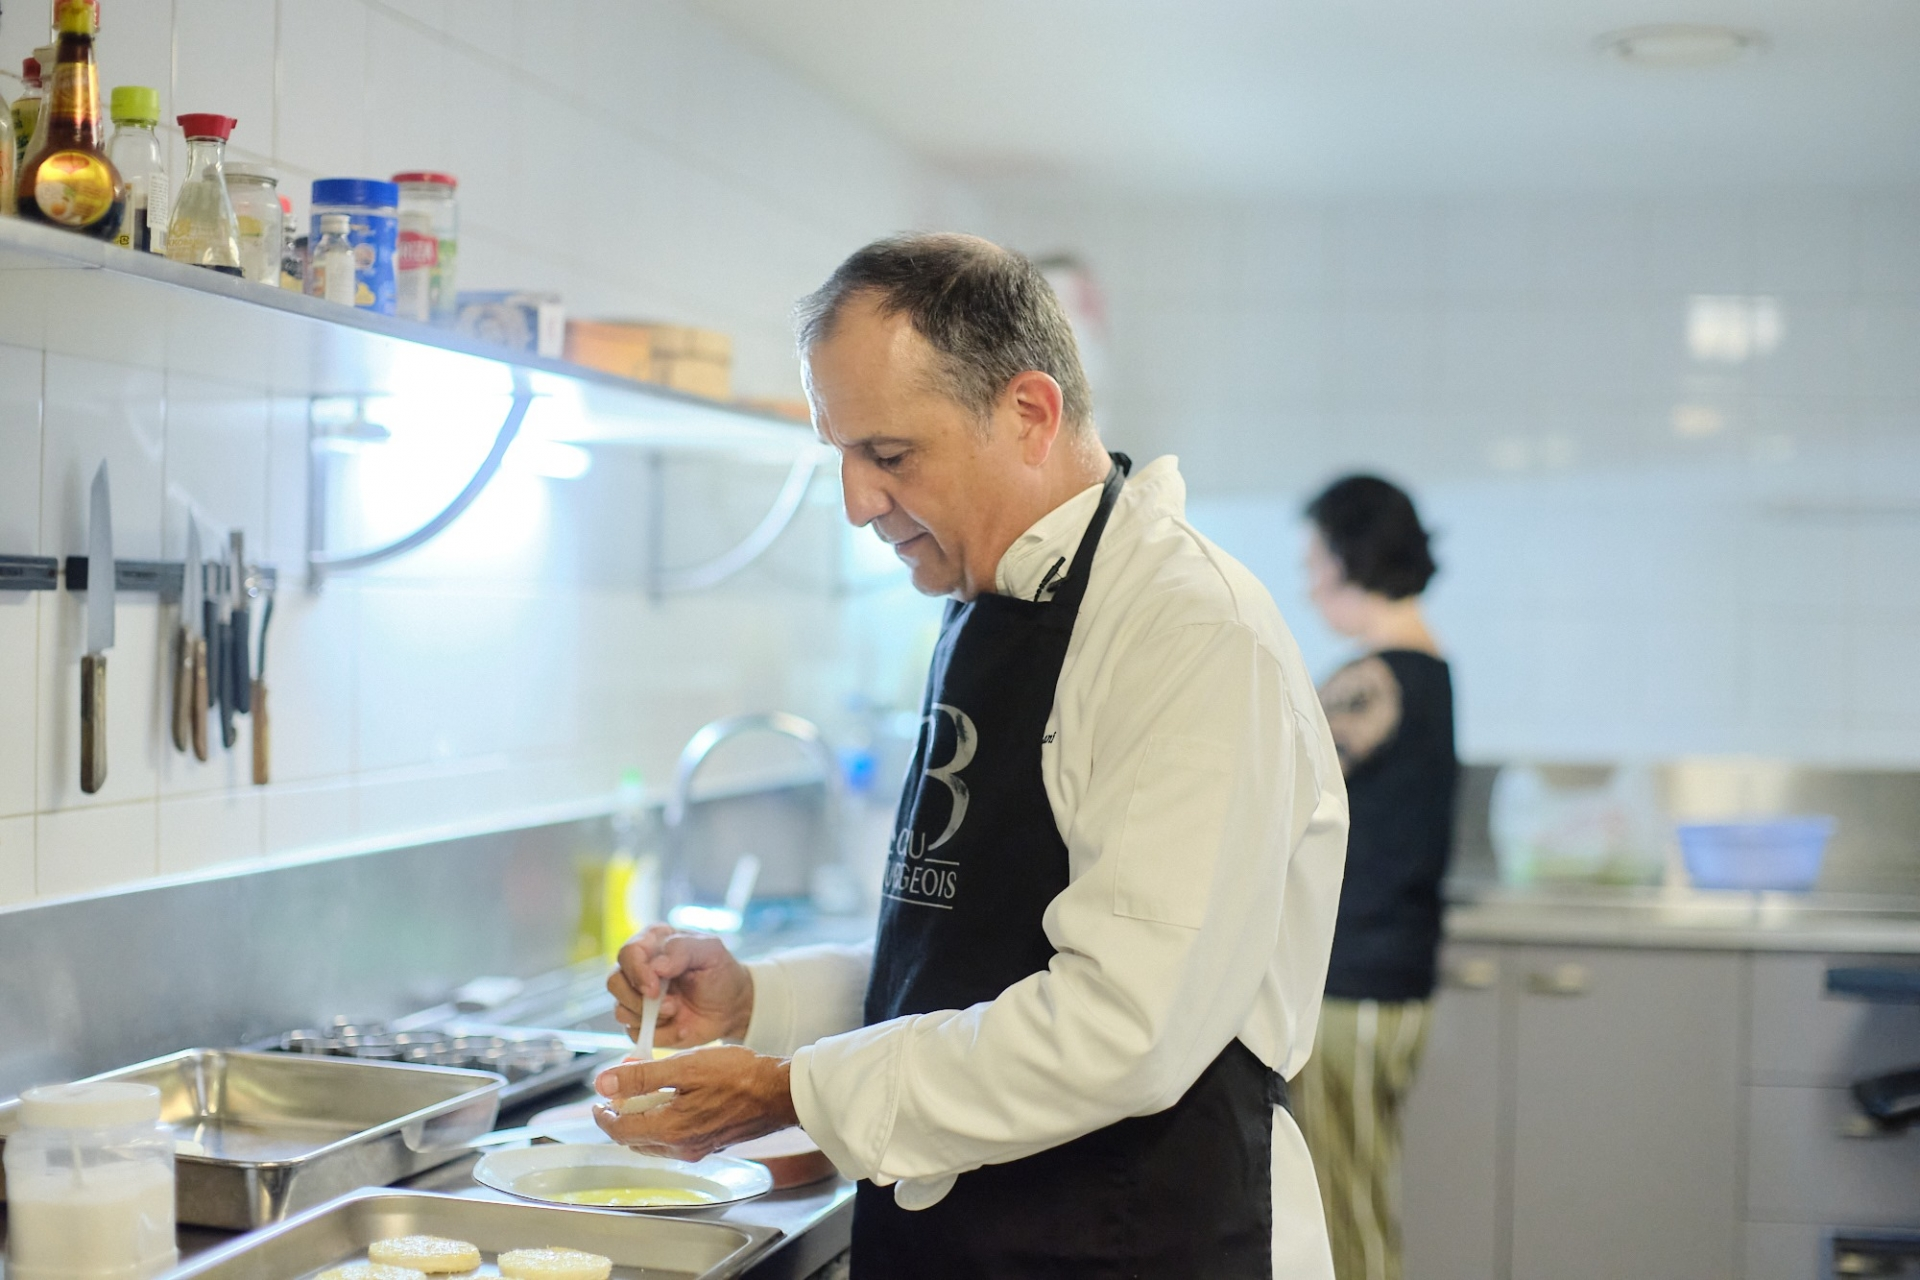 Diplomats cooking for charity activities